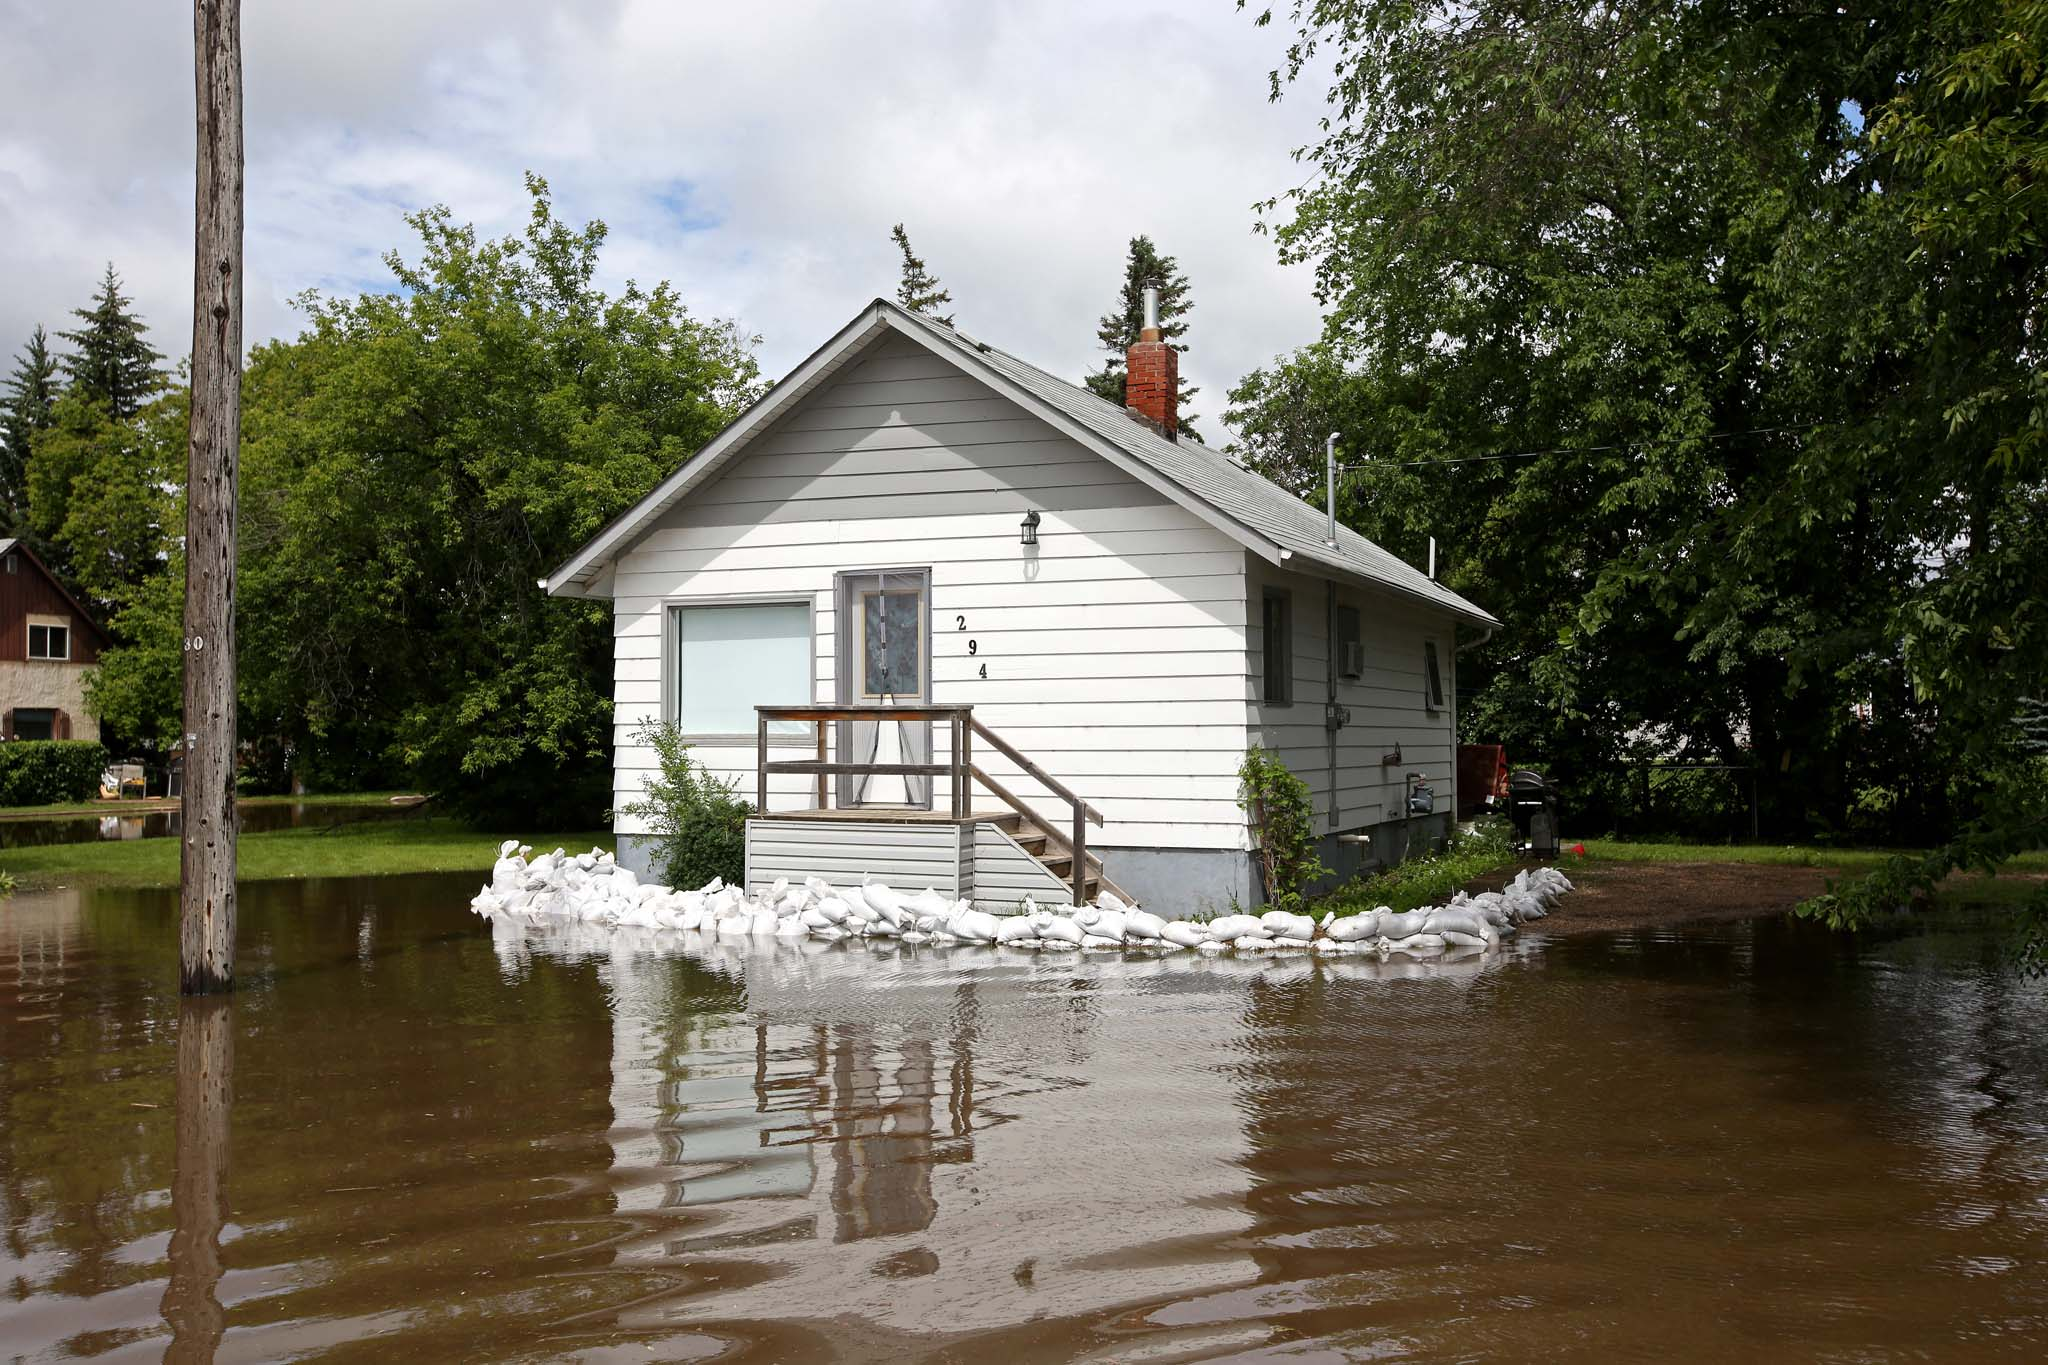 Sandbags surround a portion of a home inundated with water on King Street in the town of Virden as the Gopher Creek continued to rise on Monday.